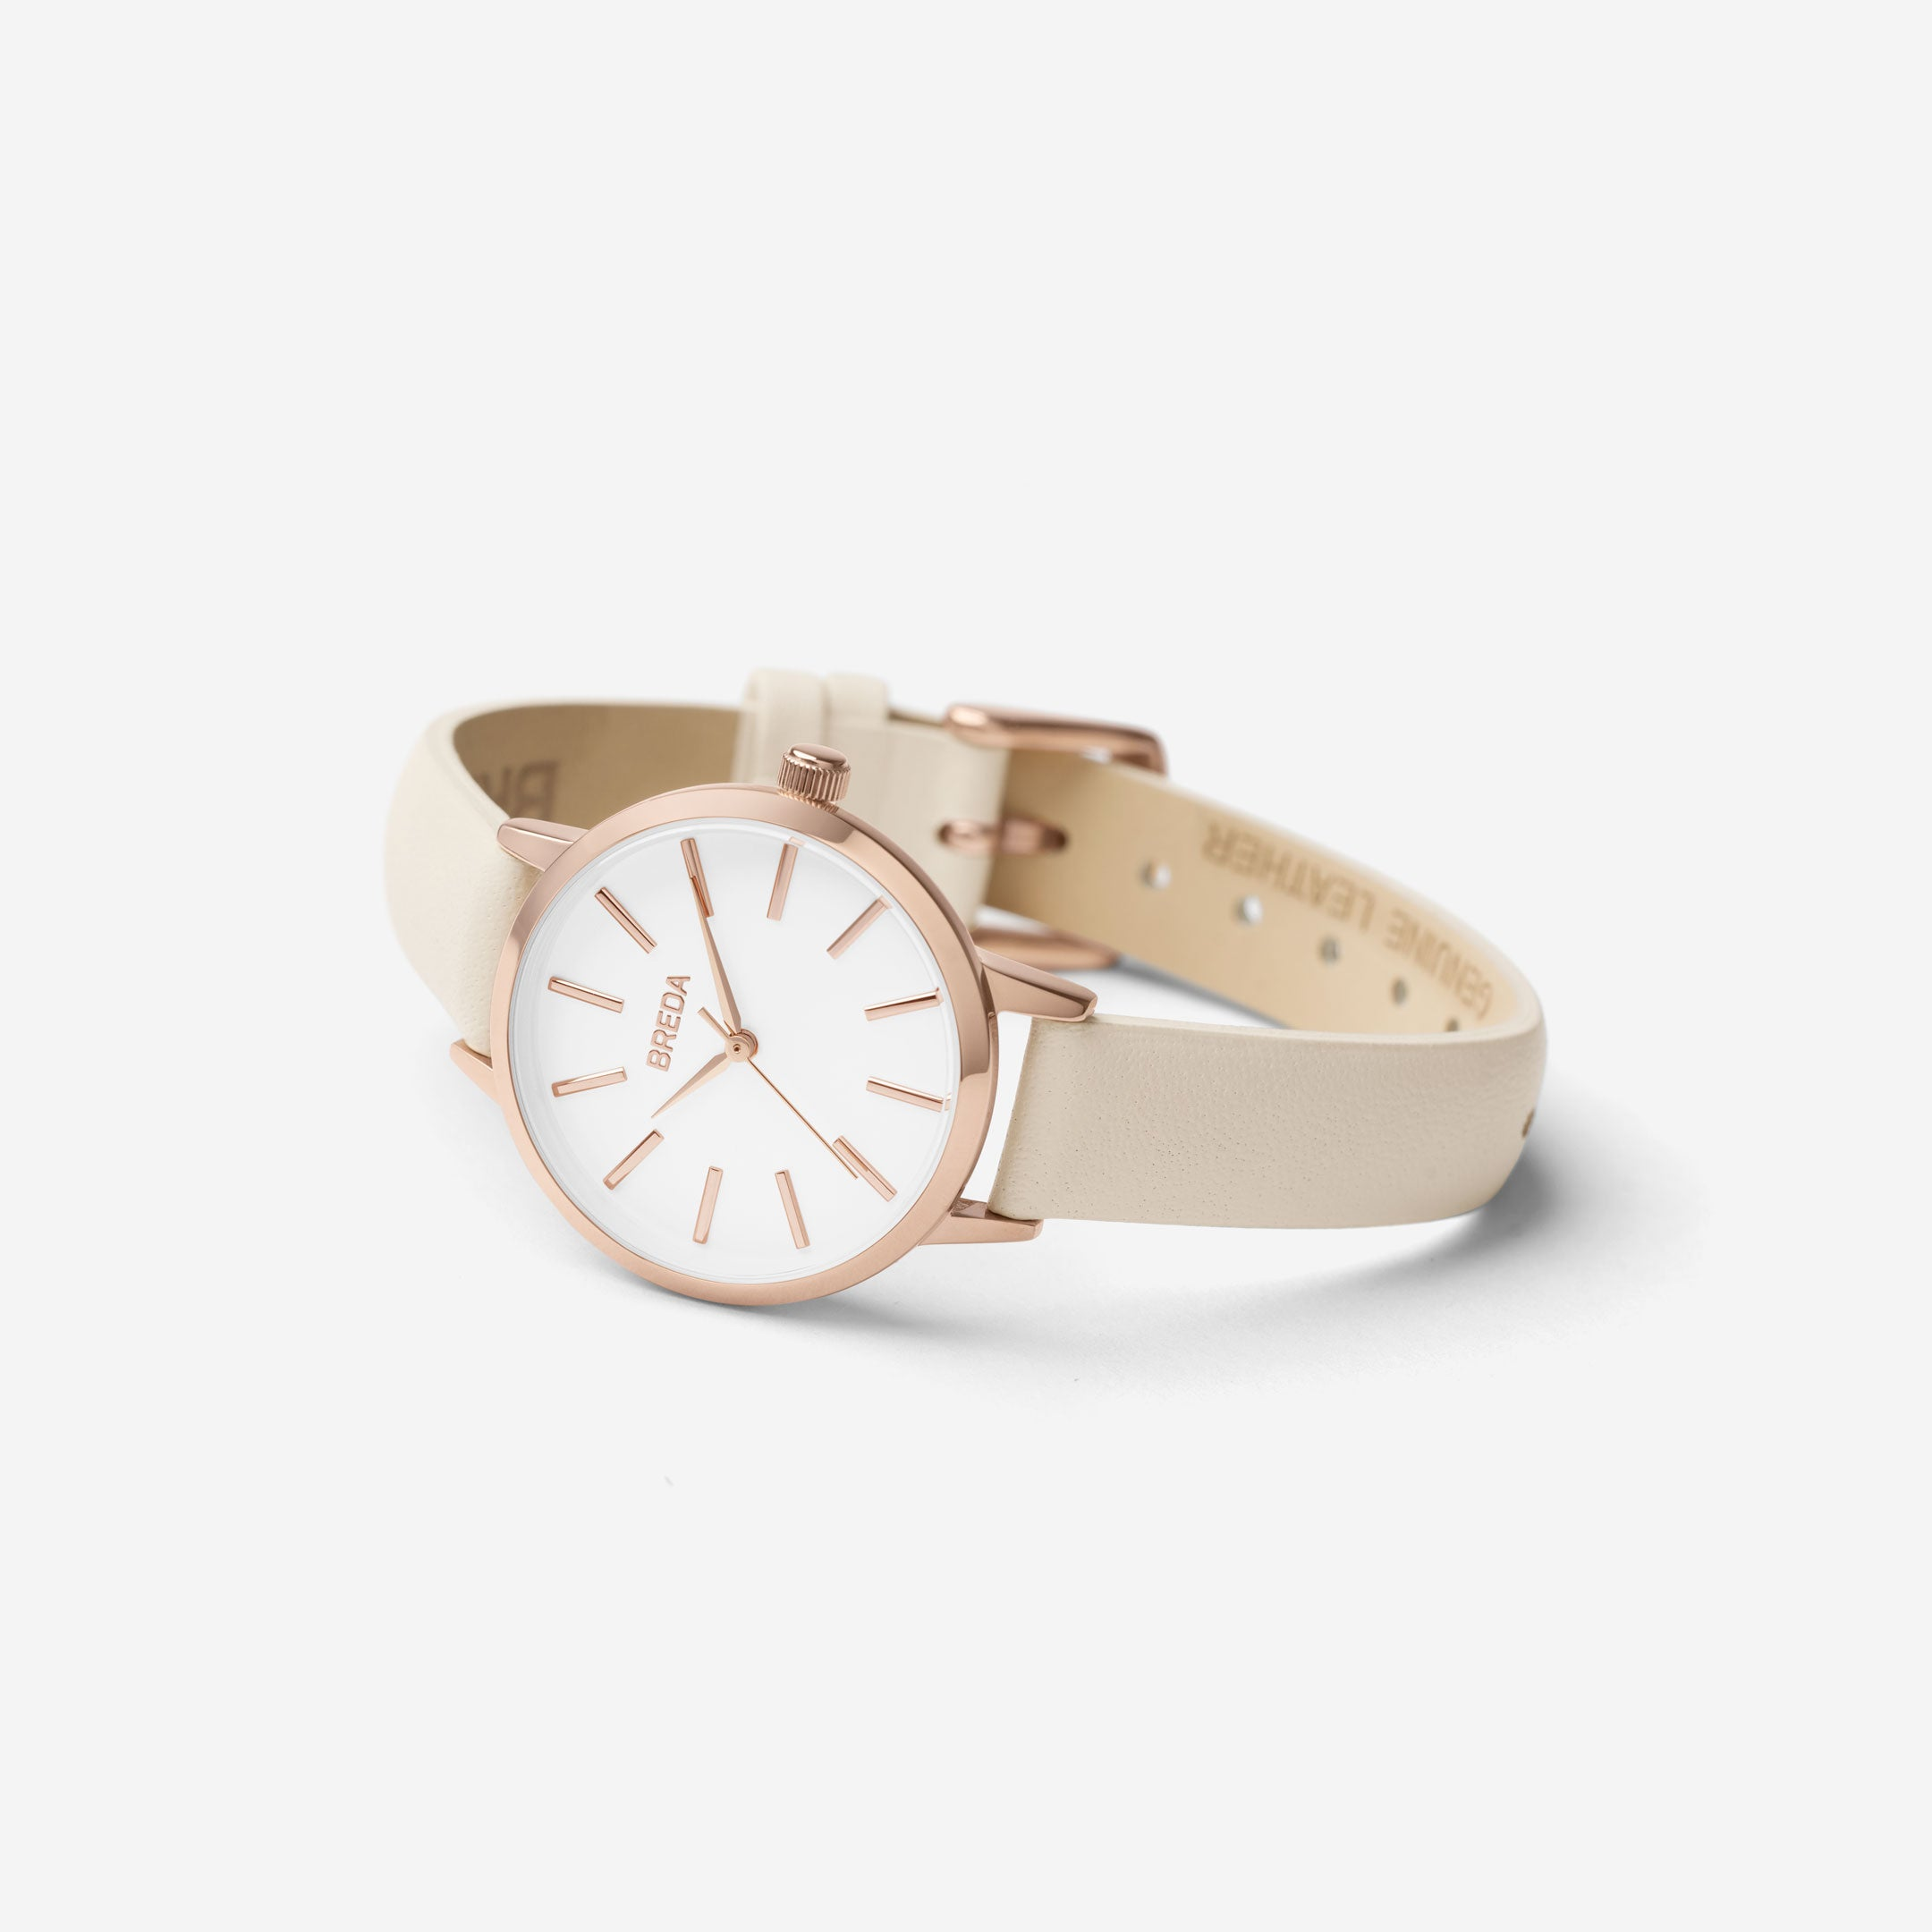 //cdn.shopify.com/s/files/1/0879/6650/products/breda-petite-joule-1734c-rose-gold-cream-watch-angle_1024x1024.jpg?v=1530901890